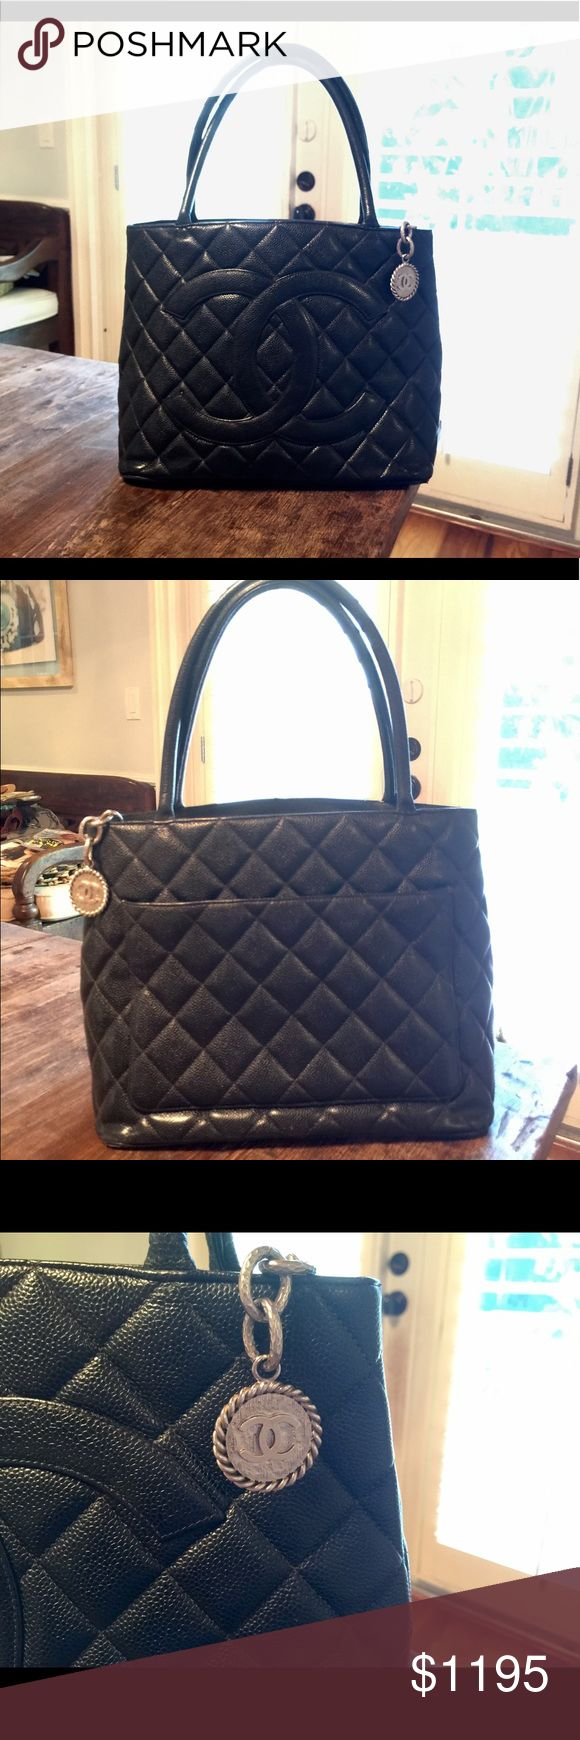 """CHANEL BLACK QUILTED CAVIAR LEATHER MEDALLION TOTE CHANEL ABSOLUTELY AUTHENTIC BLACK QUILTED CAVIAR LEATHER MEDALLION TOTE. INCREDIBLE CONDITION!!! Leather lining, silver tone hardware. One zipper inside and one open pocket on back. 12"""" long X 6"""" wide X 9.5"""" high, 6"""" handle drop. Perfect exterior, very slight signs of use inside. No marks. Market price $1,900. NO TRADES. REASONABLE OFFERS ONLY. CHANEL Bags Totes"""